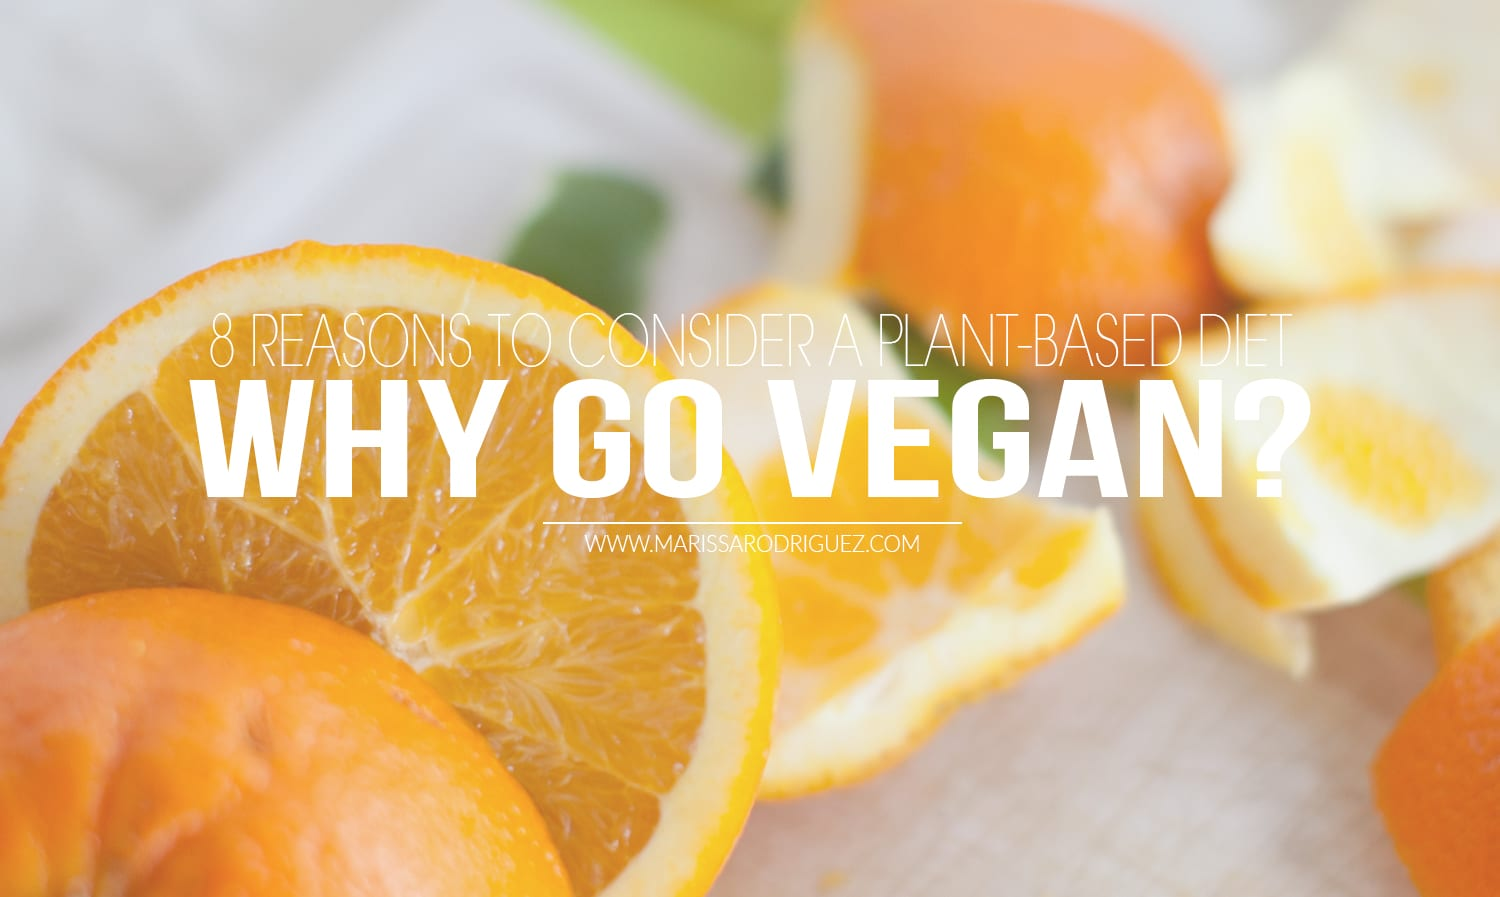 why go vegan? why go plant based? VEGAN PLANT BASED